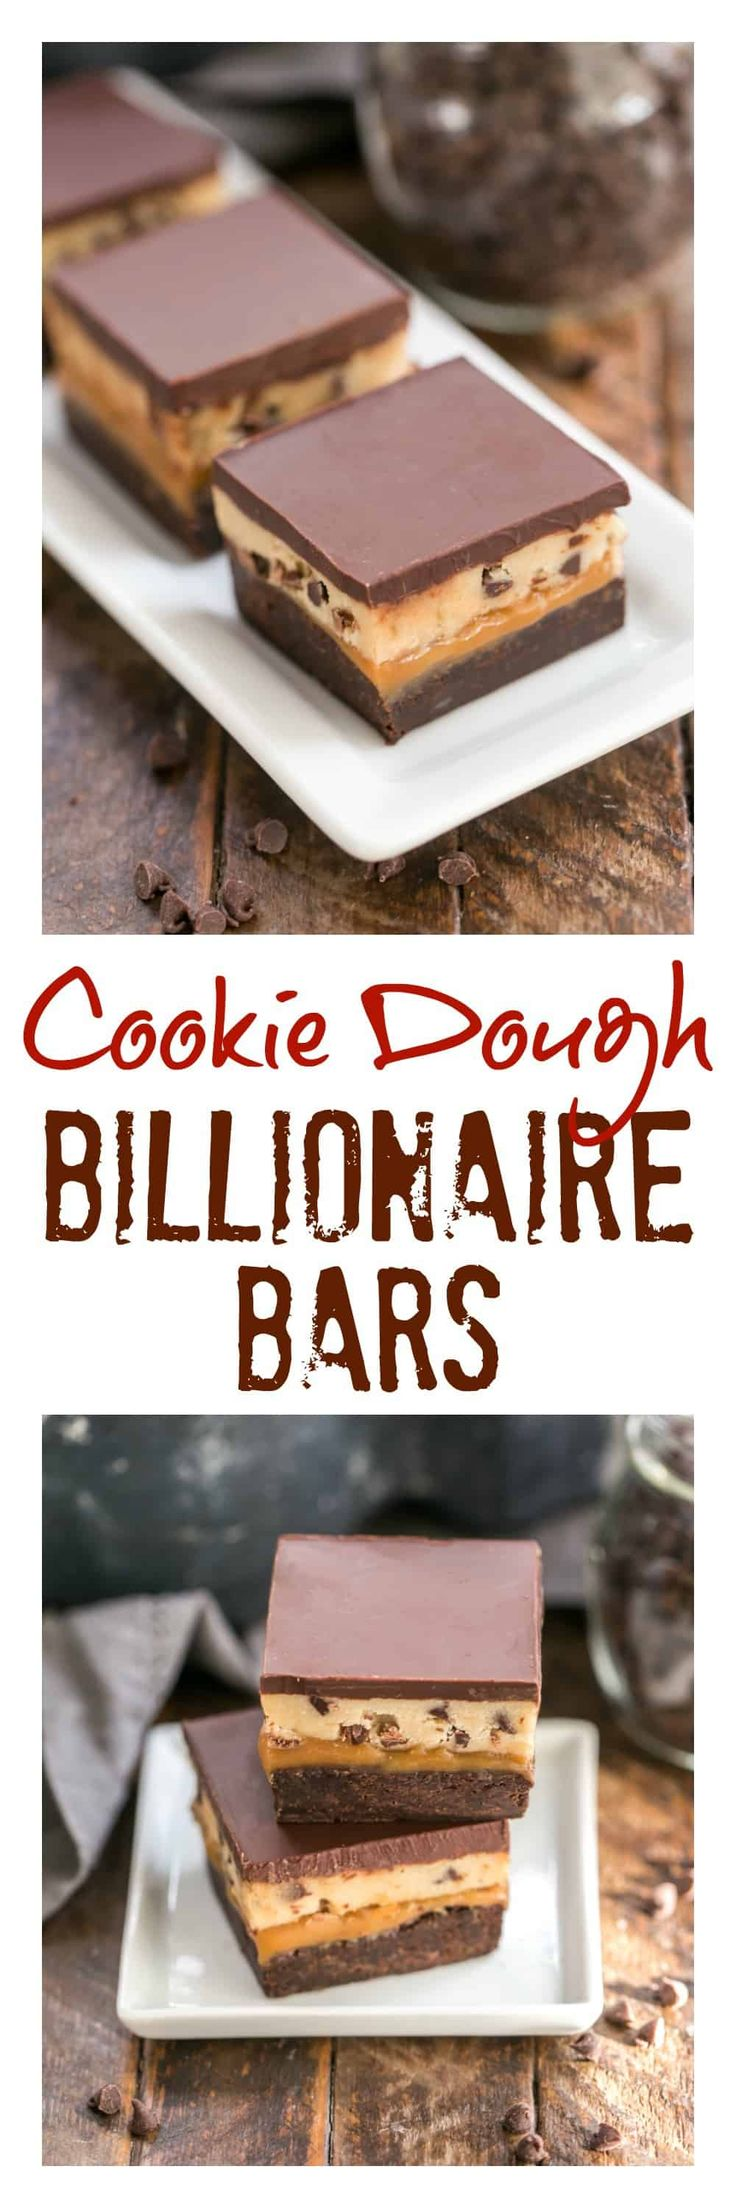 Cookie Dough Billionaire Bars | Layers of brownies, caramel, cookie dough and ganache for an outrageously rich dessert! #chocolate #cookiedough #carameldesserts